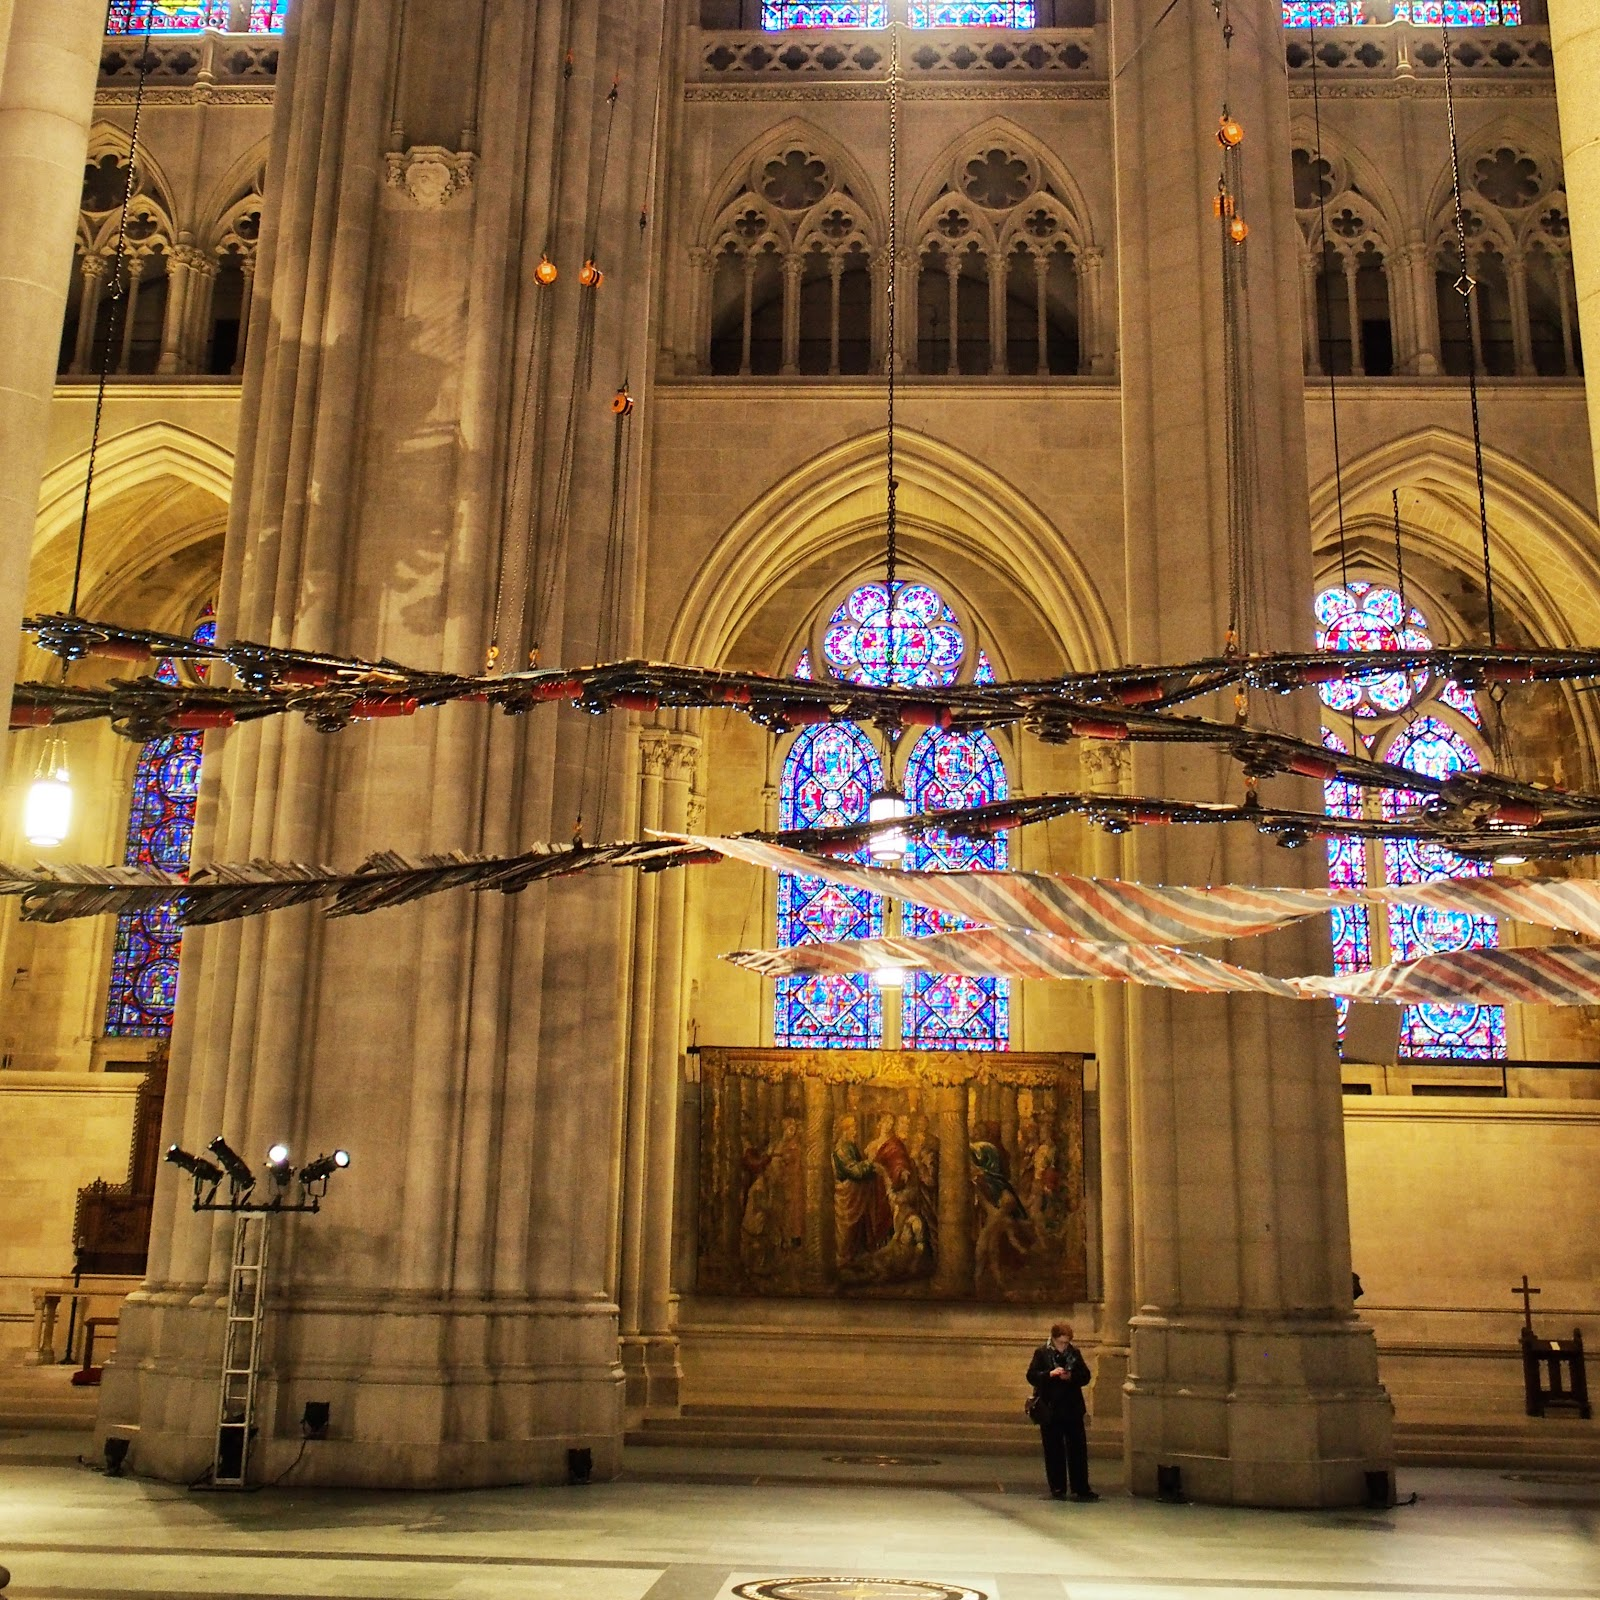 Tail Feathers #Tailfeathers #phoenix #xubing #stjohnthedivinecathedral #art #nyc ©2014 Nancy Lundebjerg